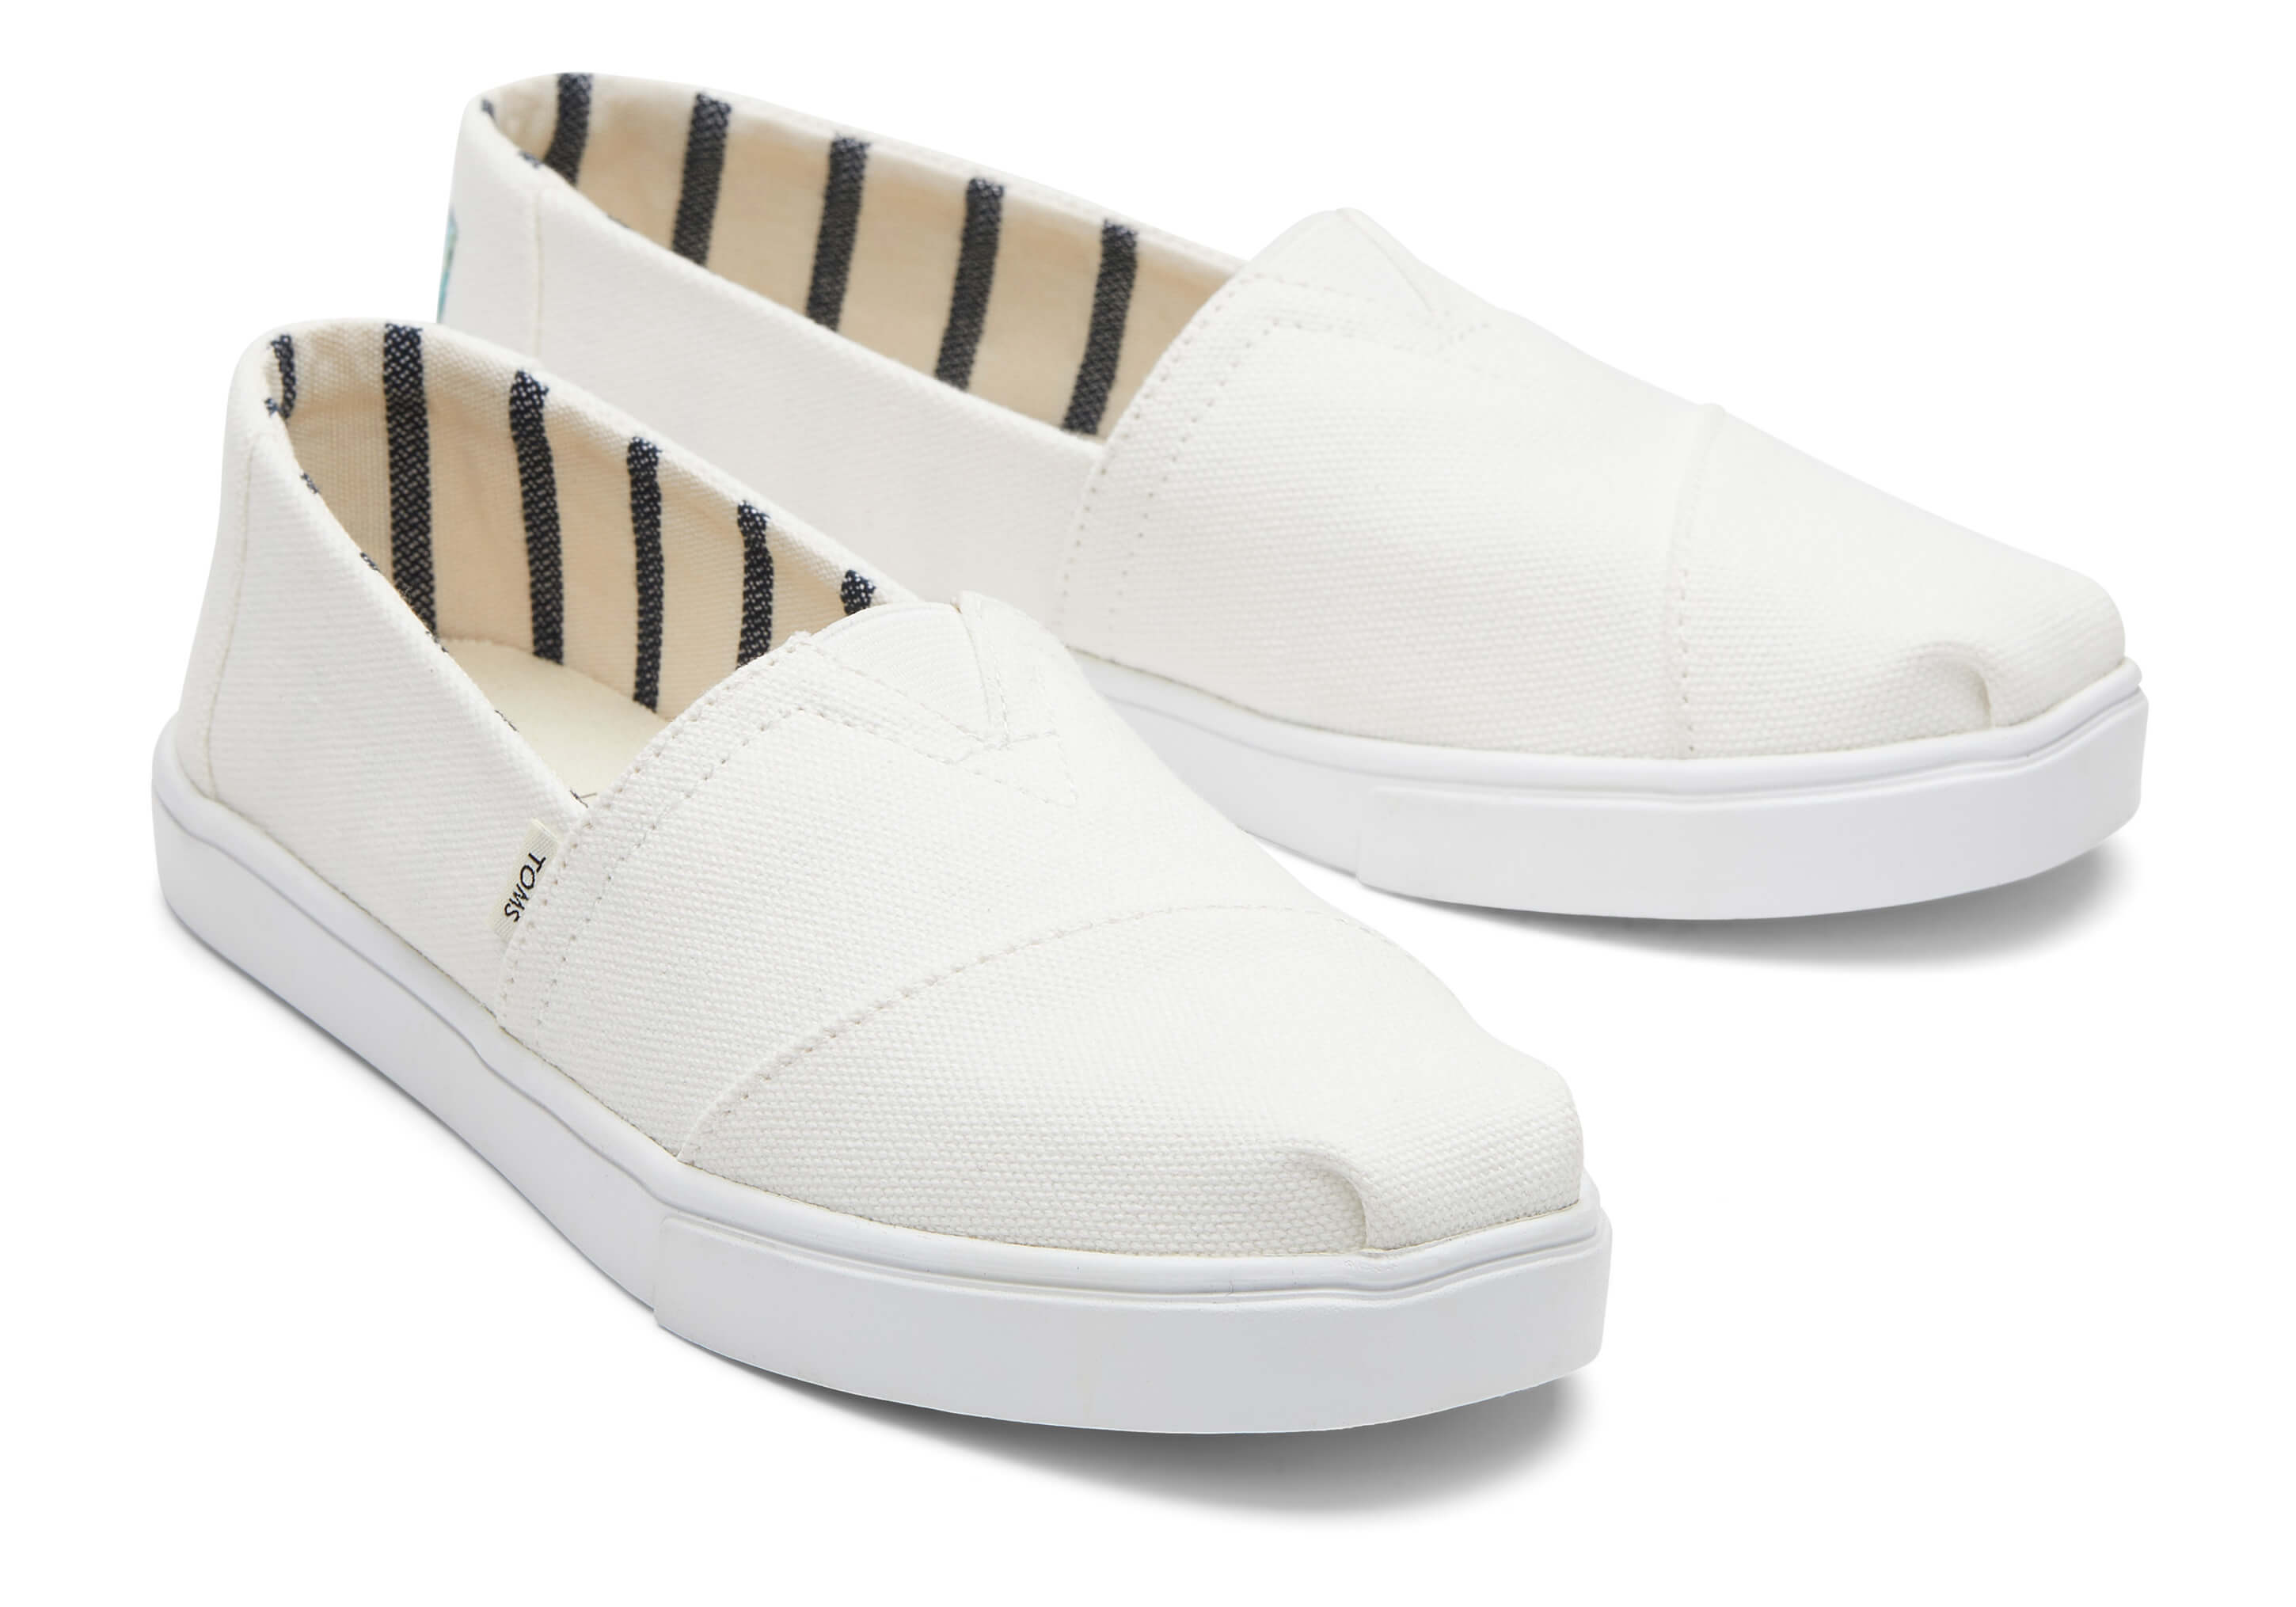 toms Witte Canvas Cupsole Alpargatas Voor Dames Instappers White